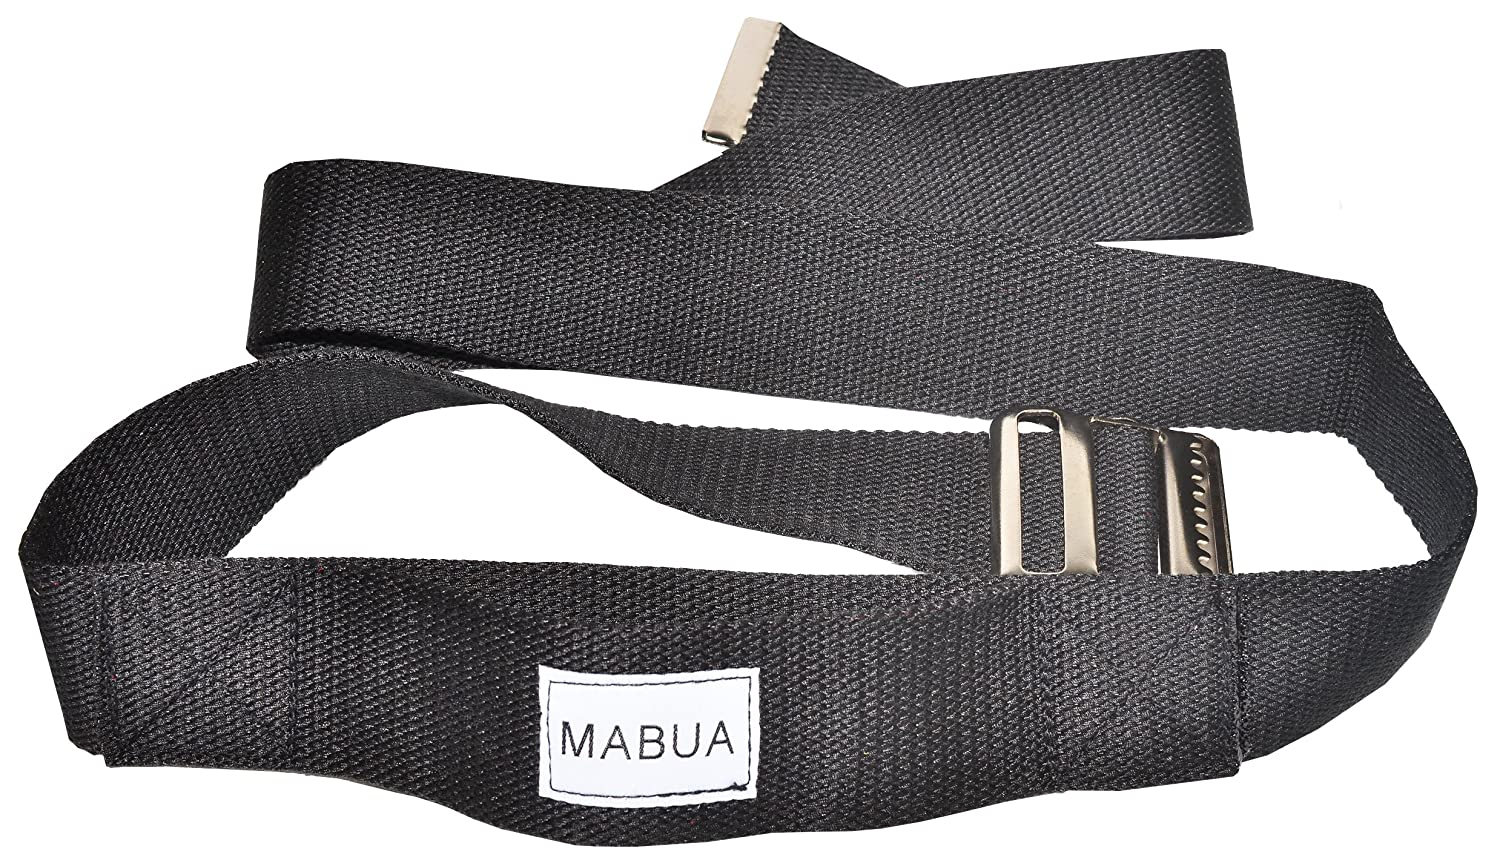 Arizona physical therapy equipment - Amazon Com Physical Therapy Gait Belt With Metal Buckle Black Health Personal Care